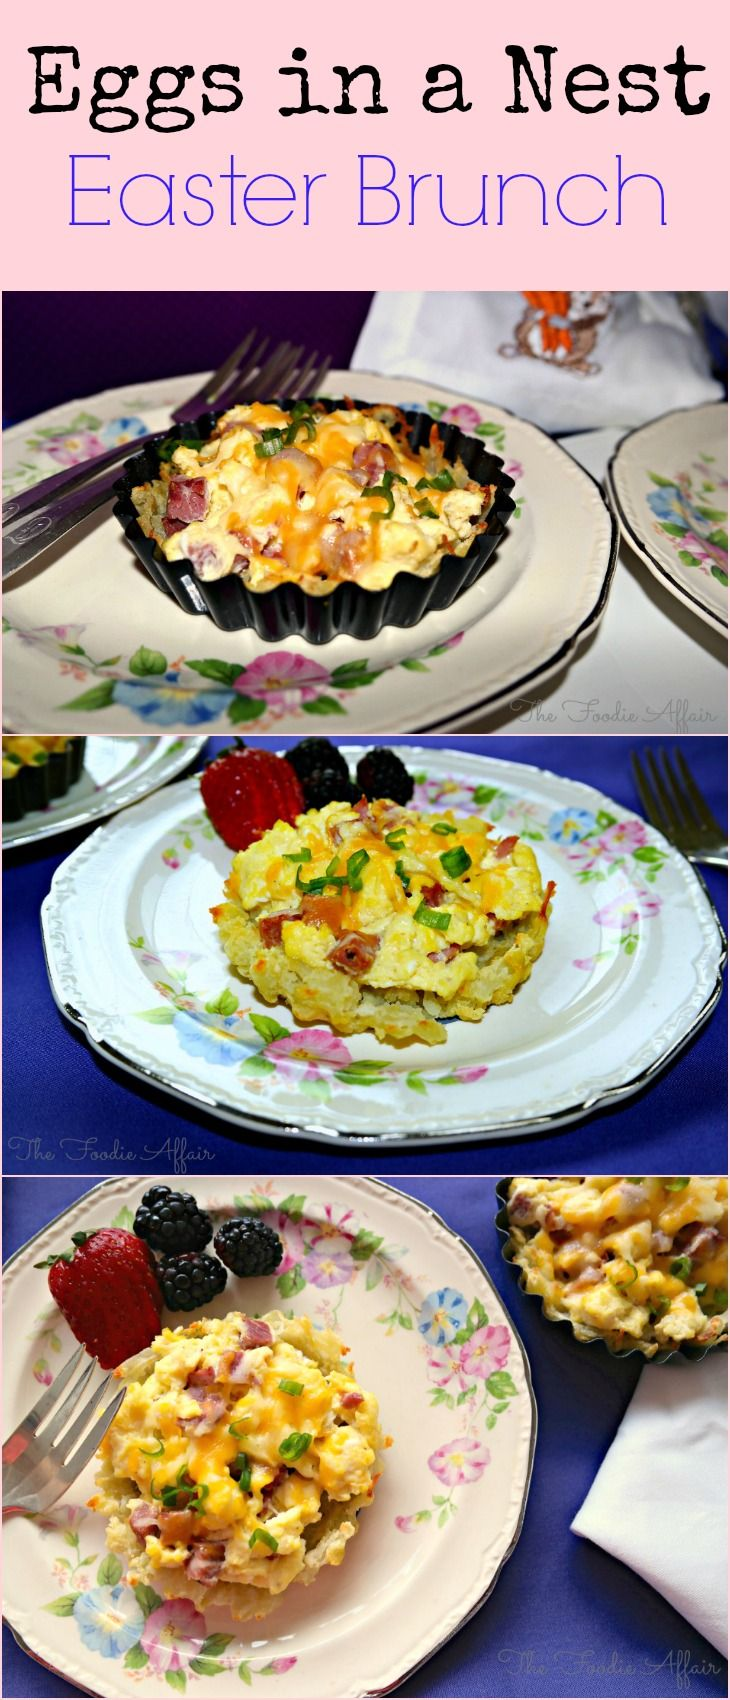 Shredded baked potatoes gently patted into a mini tart pan, then baked until a crust forms. Add cooked scrambled eggs, top with some cheese and you have Eggs in a Nest! The Foodie Affair #Brunch #Easter #eggs